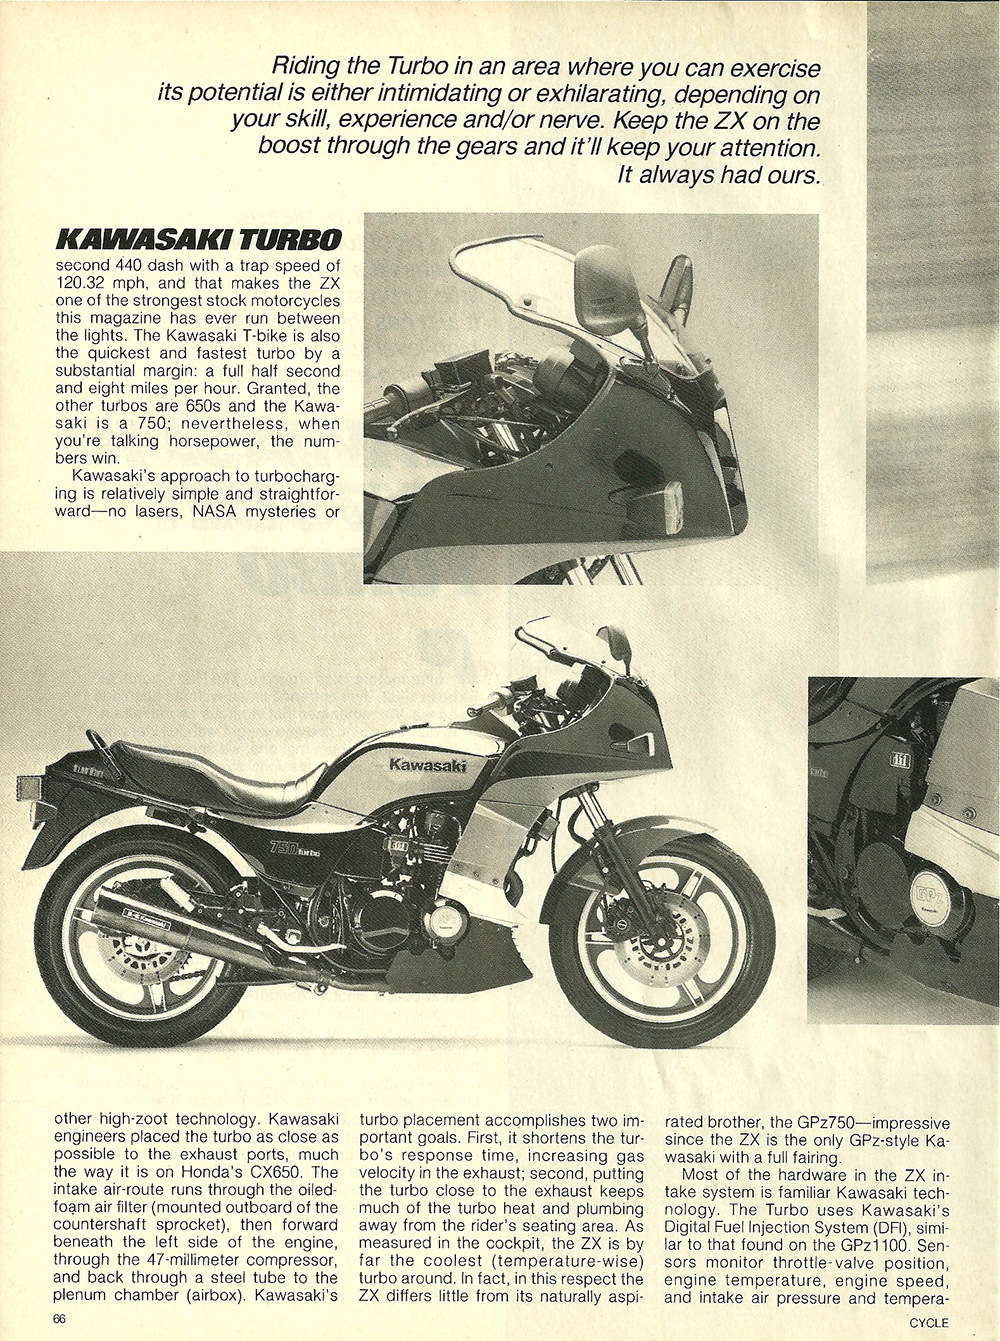 1984 Kawasaki ZX750E1 turbo road test 3.jpg